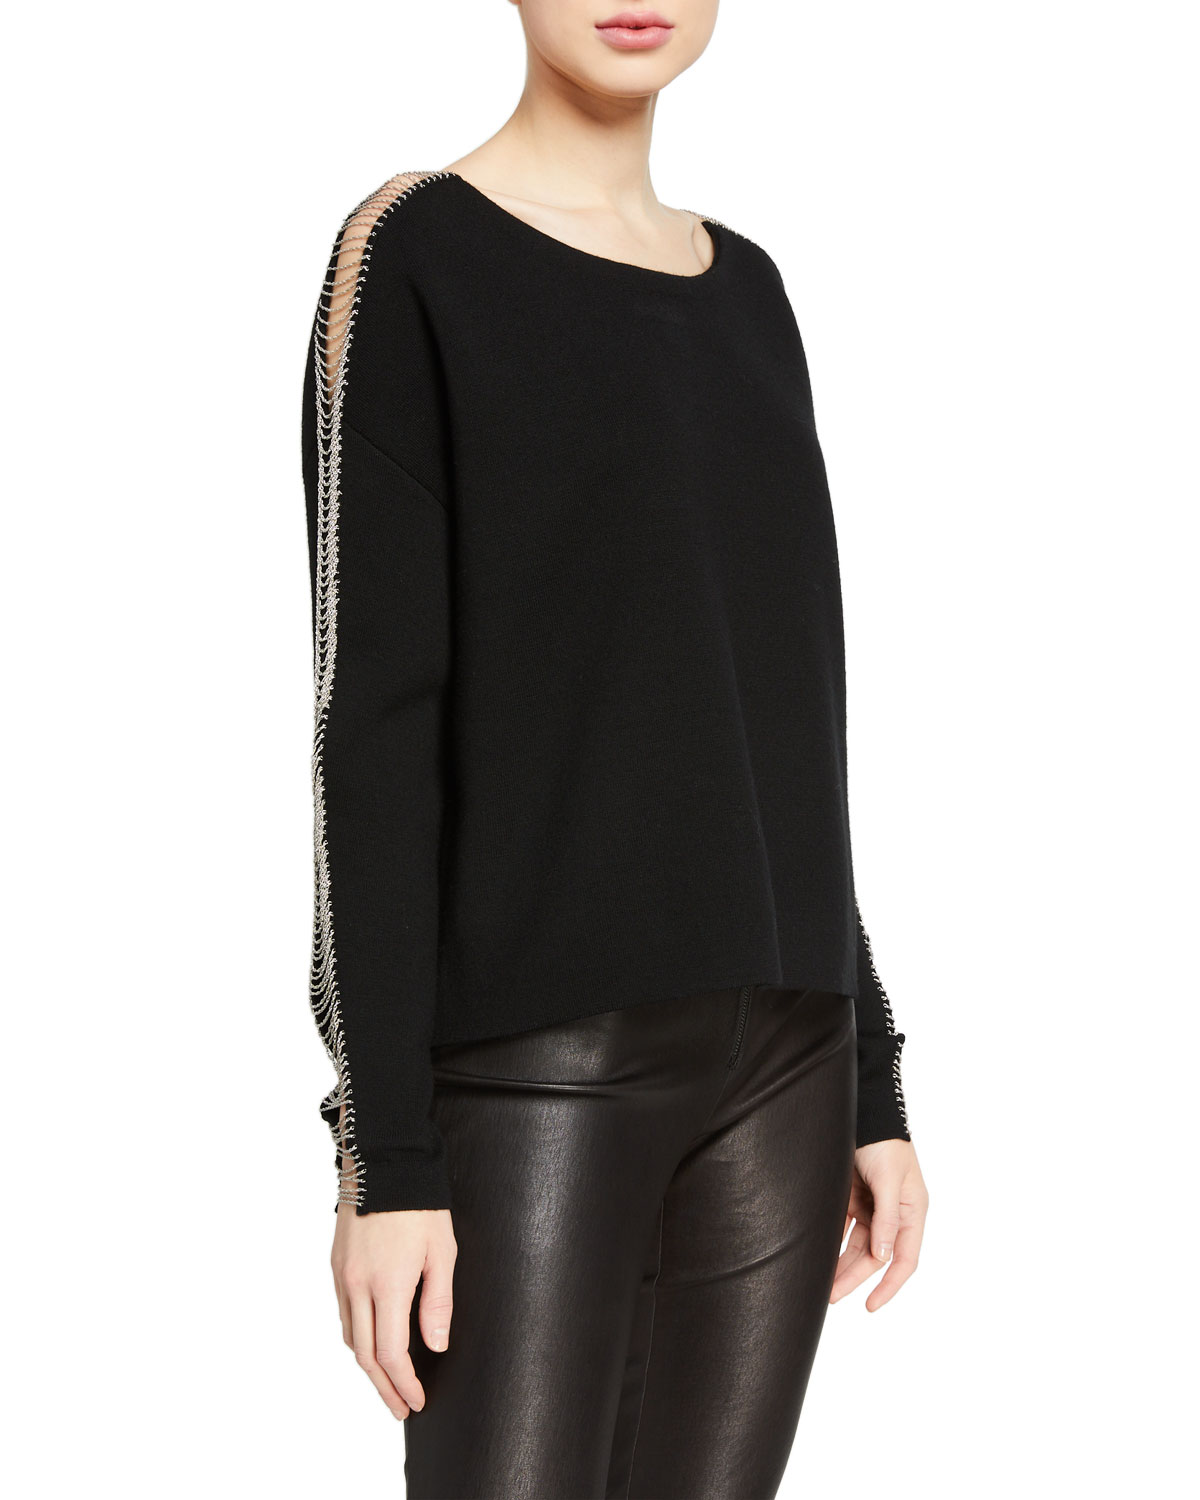 Alice + Olivia Marmont Crewneck Pullover With Chains